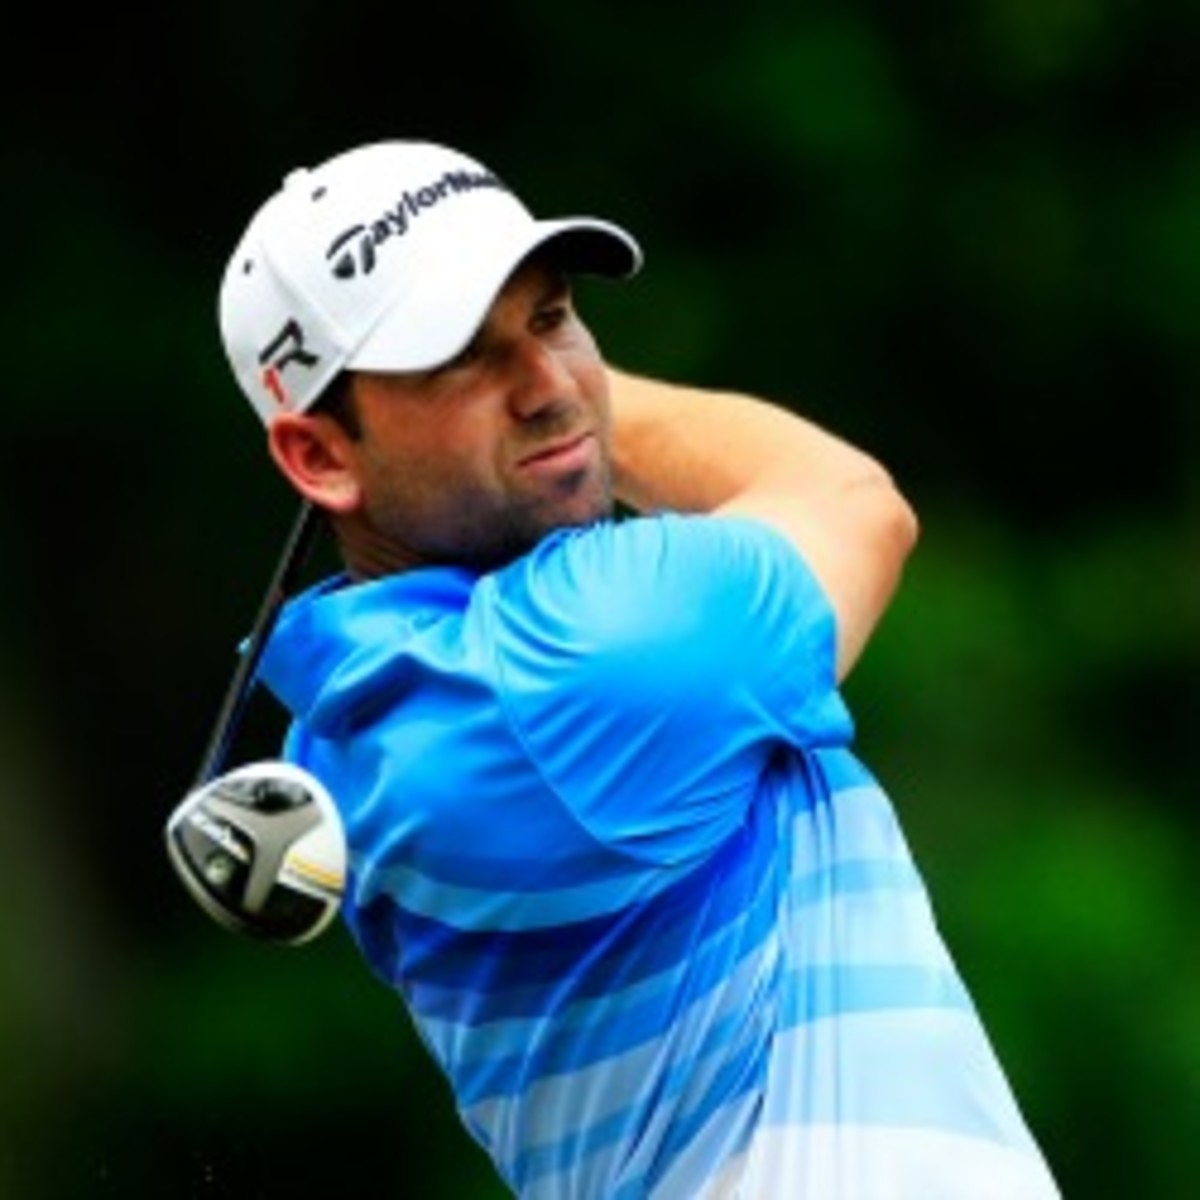 Sergio Garcia is in the hunt at the Players Championship. (Sam Greenwood/Getty Images)